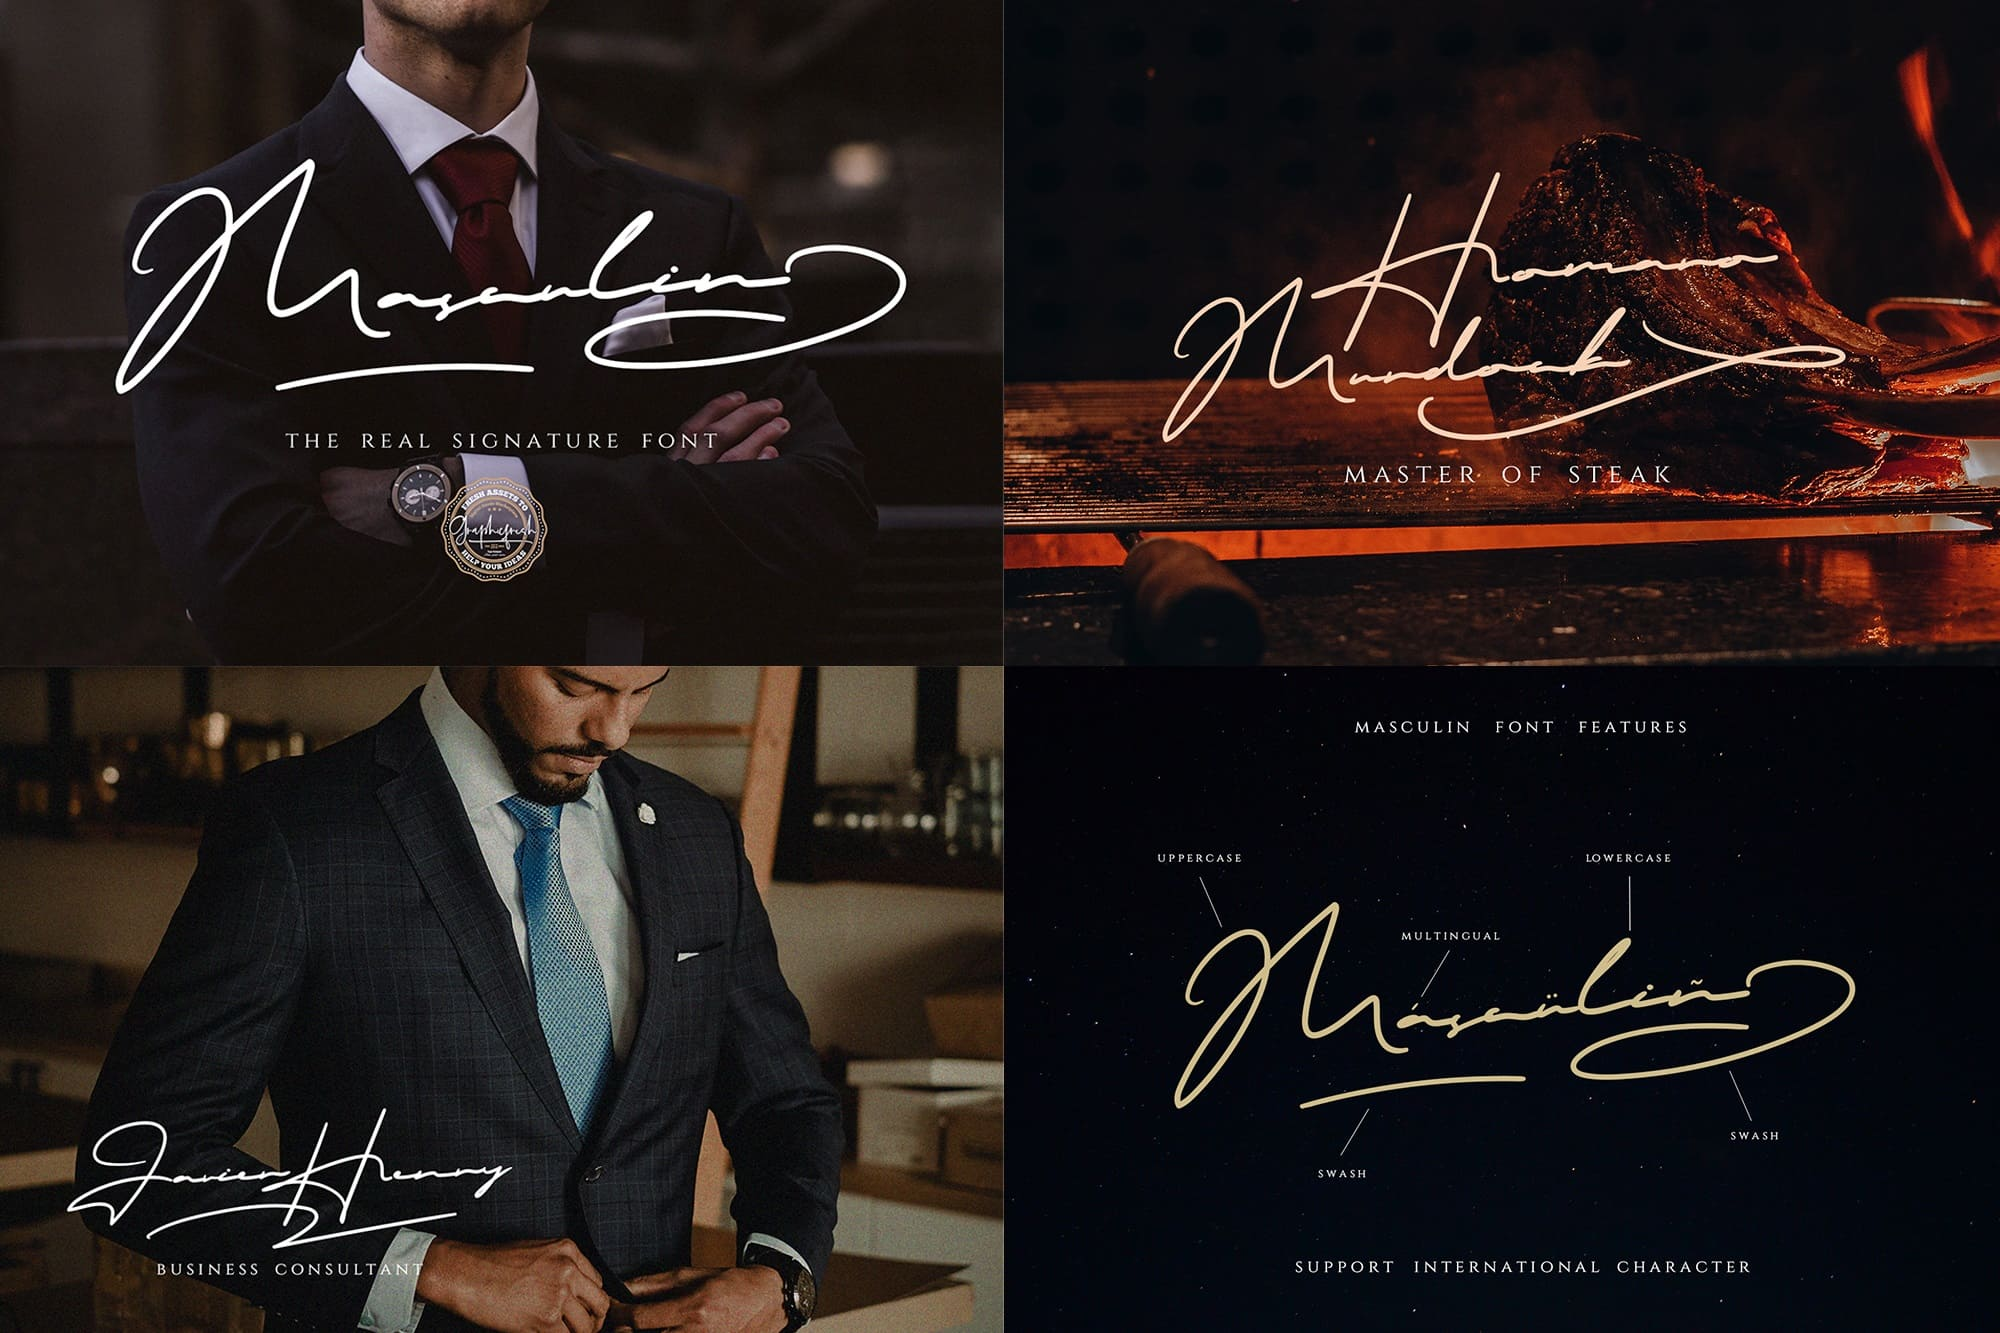 MASCULIN - The Real Signature Font.